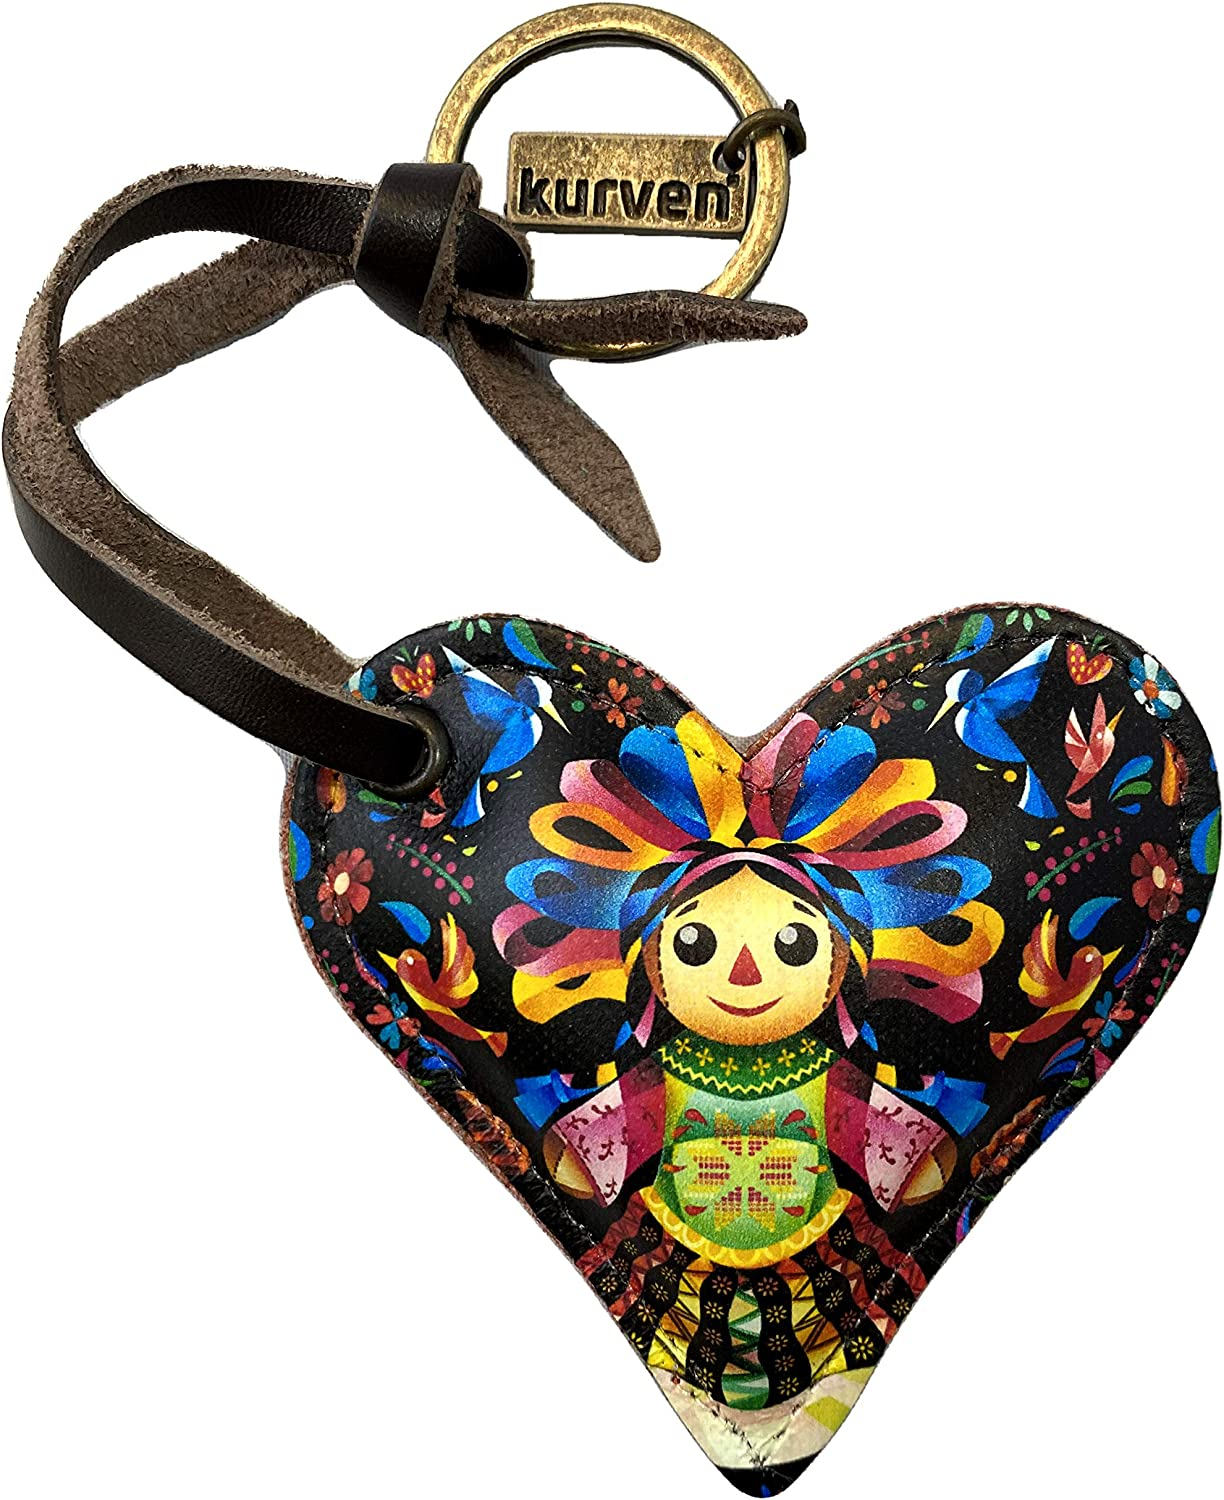 Kurven Leather Keychain Cute Mexican Doll Black Alebrije Heart Shaped With Metal Ring And Brilliant Colours…